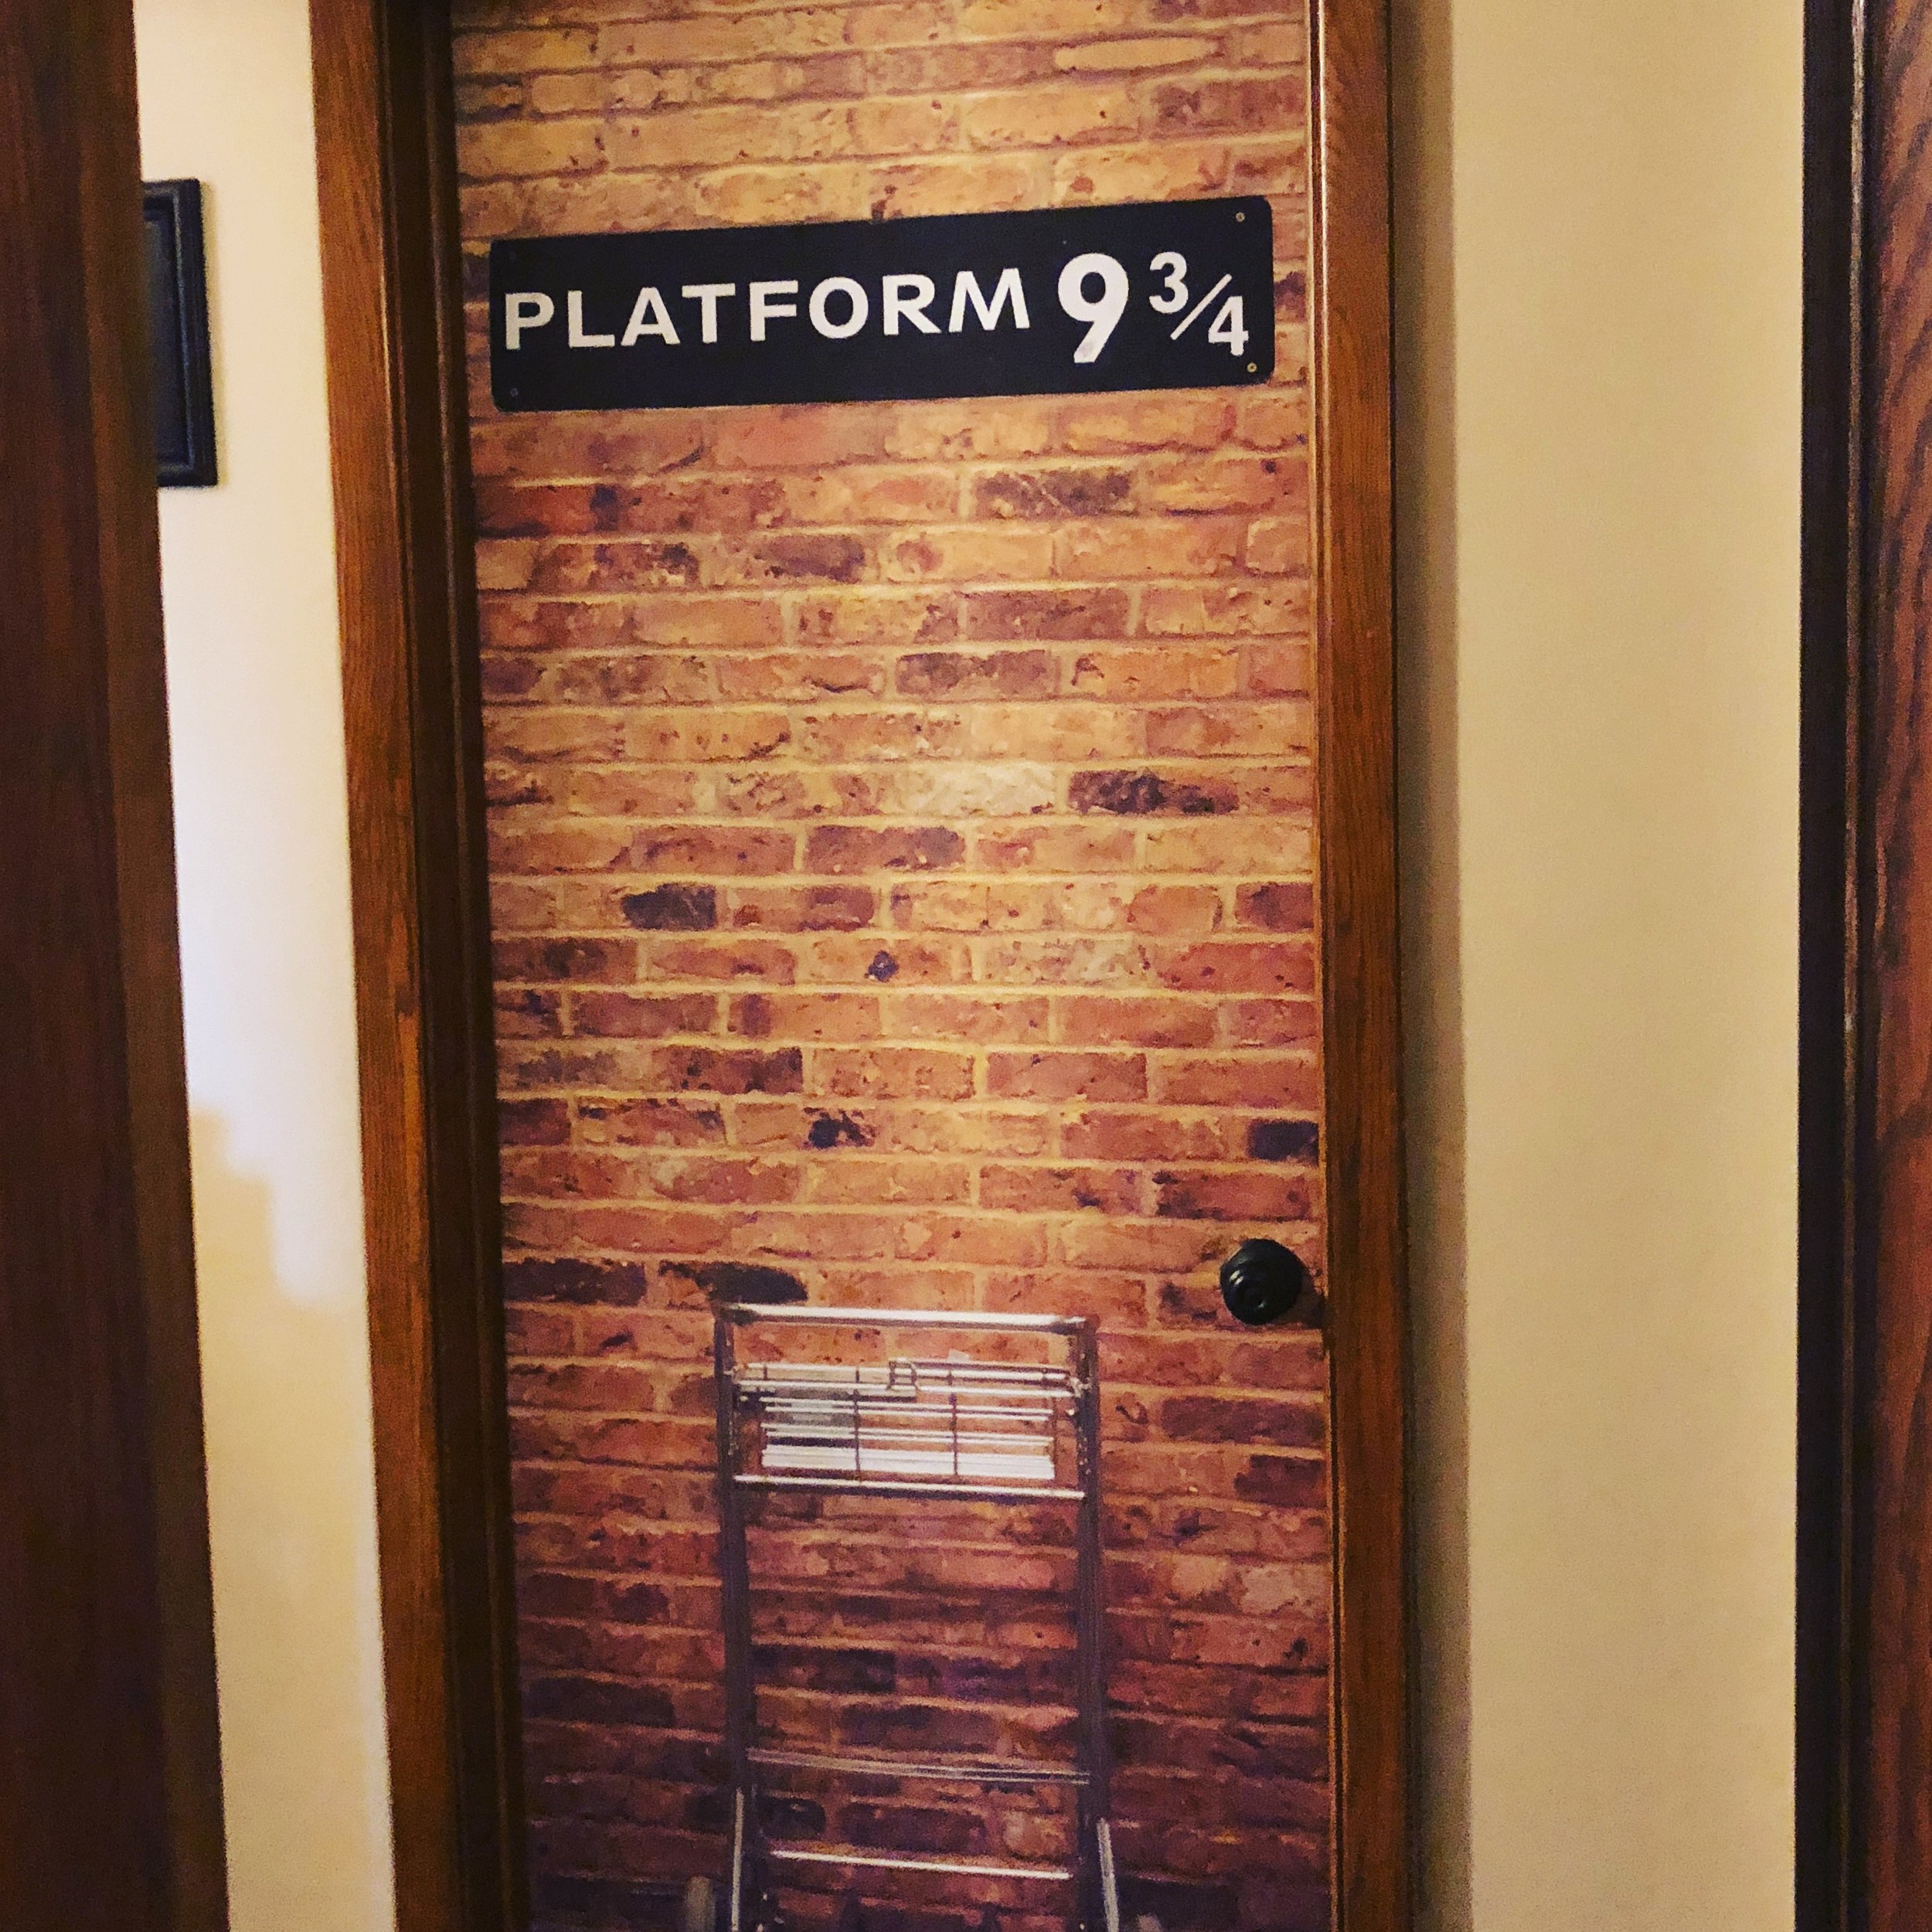 1 - I'm a #potterhead and truly believe the Harry Potter Series saved my life! I have an entire room decorated with Harry Potter memorabilia, colors and more. This is the magical doorway to said room!